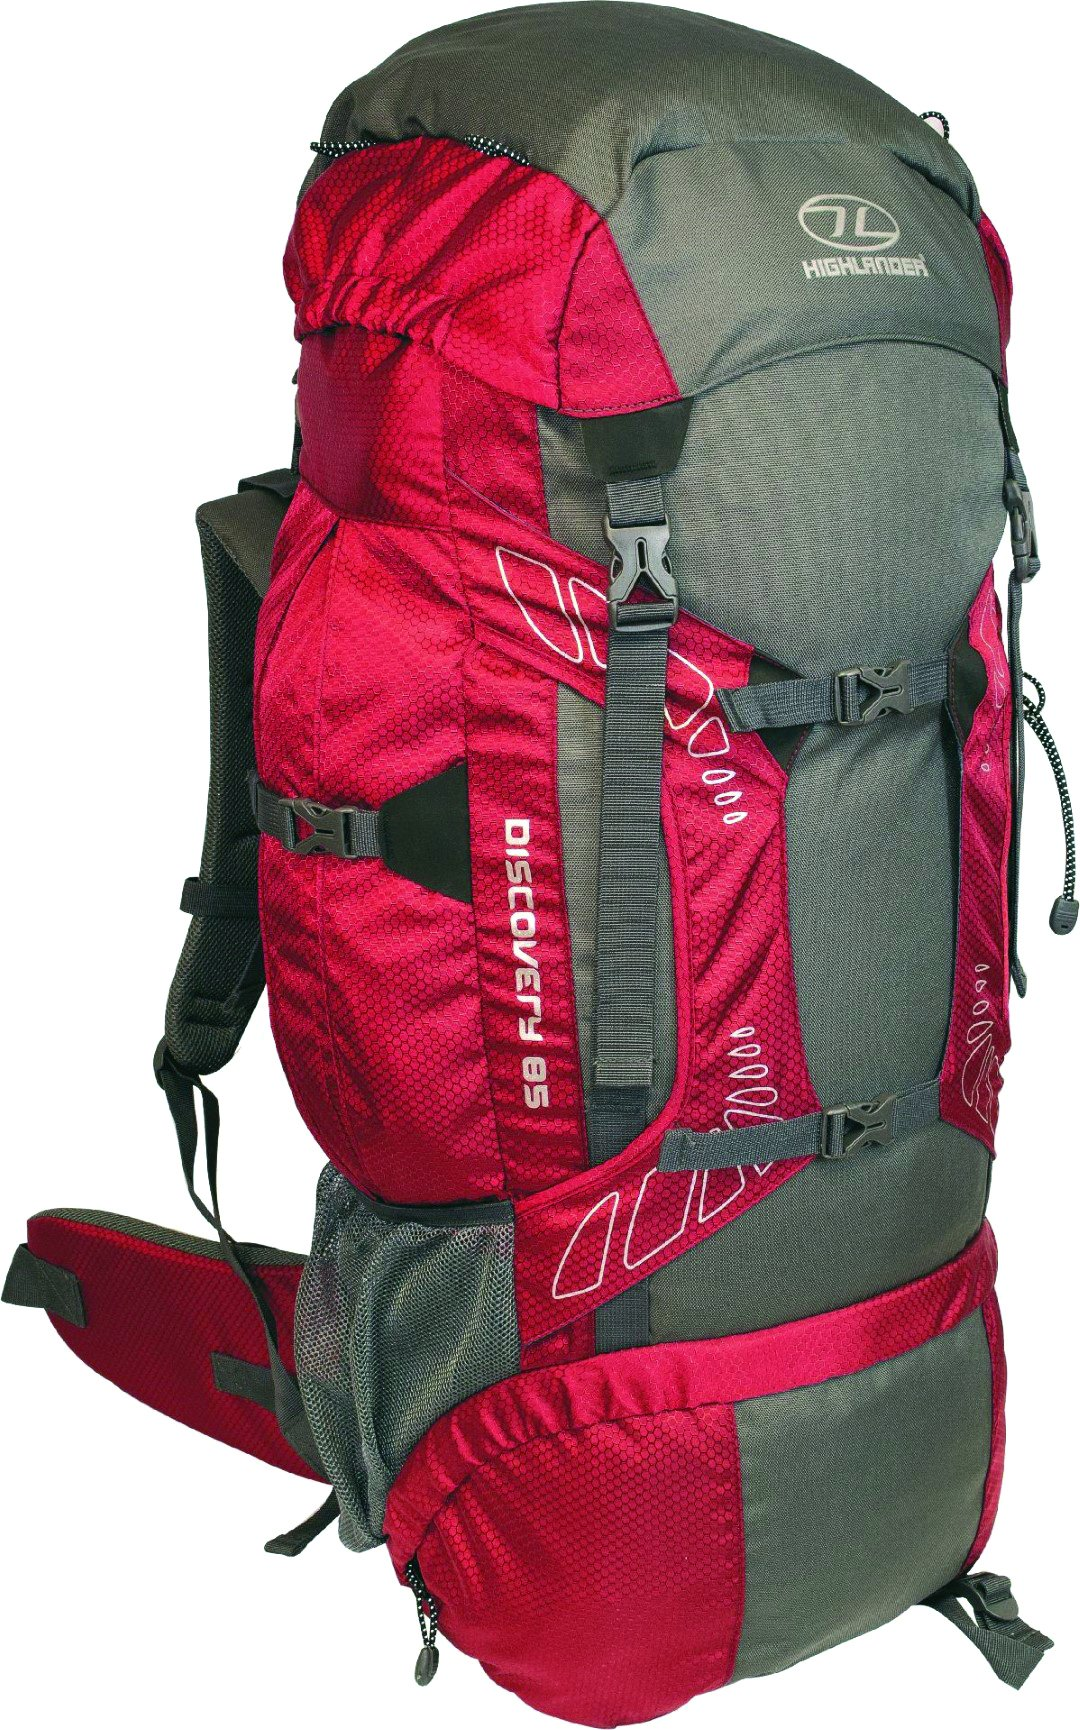 Highlander Outdoor Discovery 85-Liter Rucksack, Red